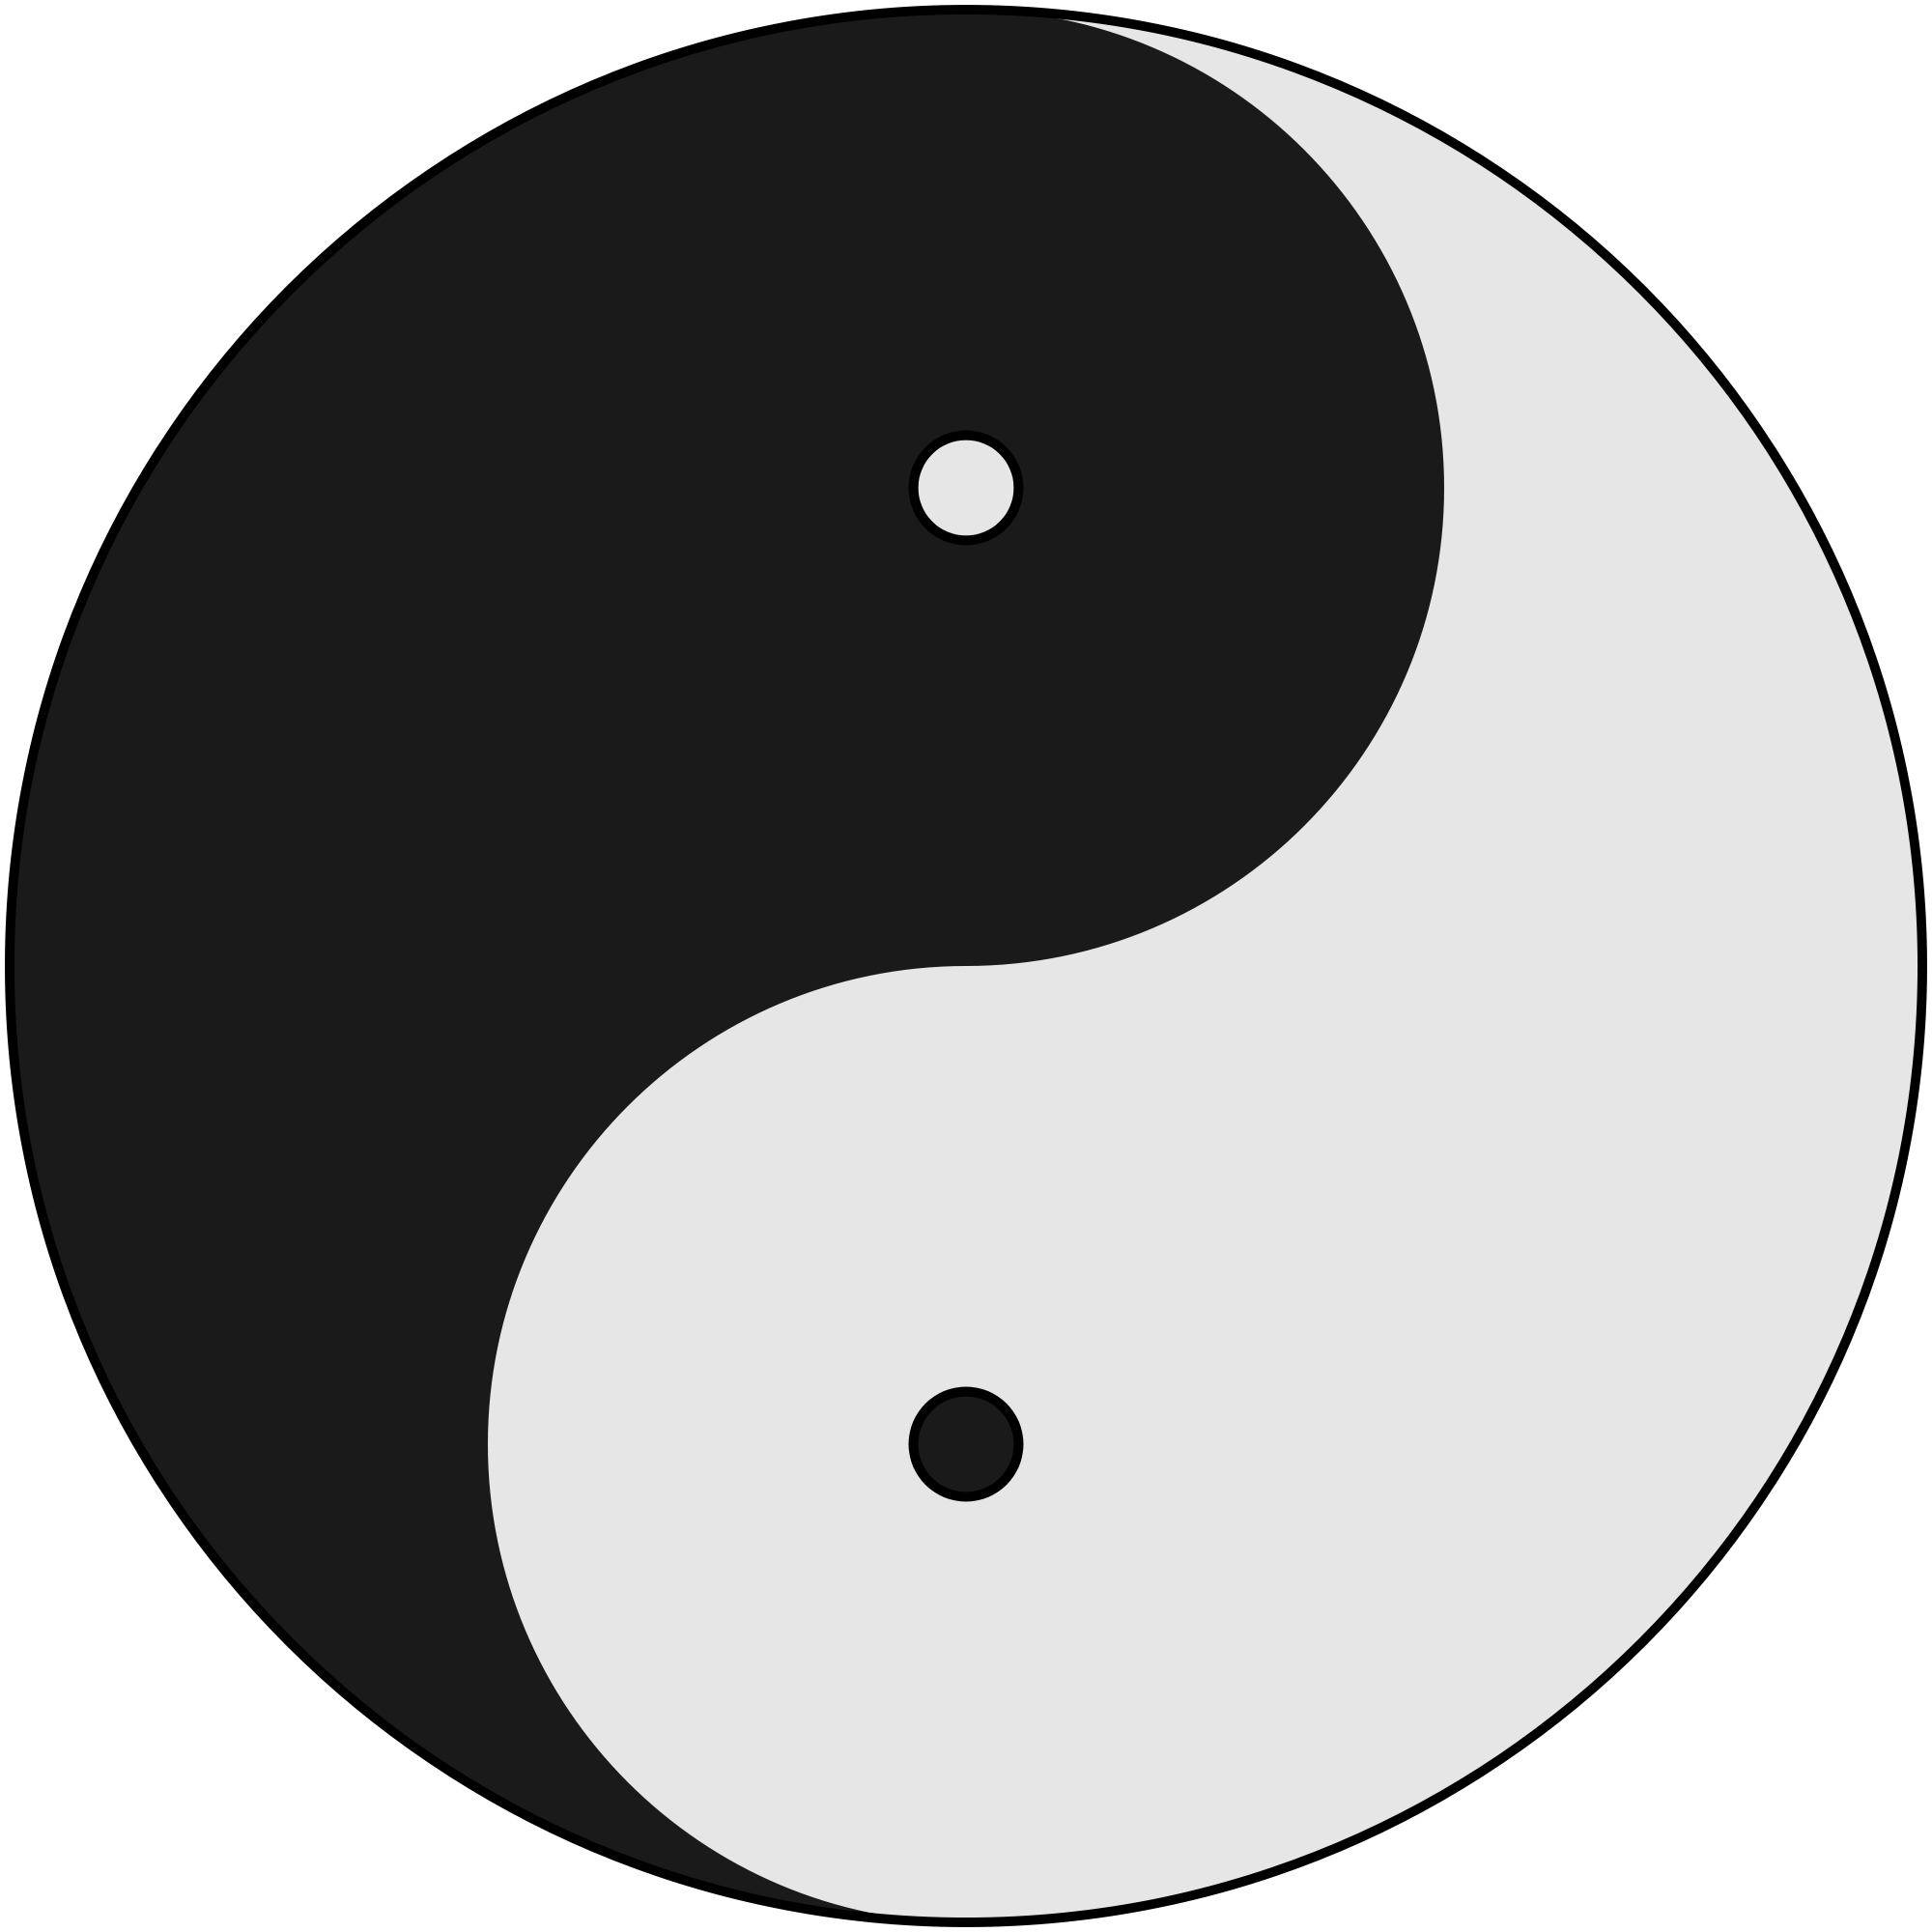 File:Yinyang.svg.